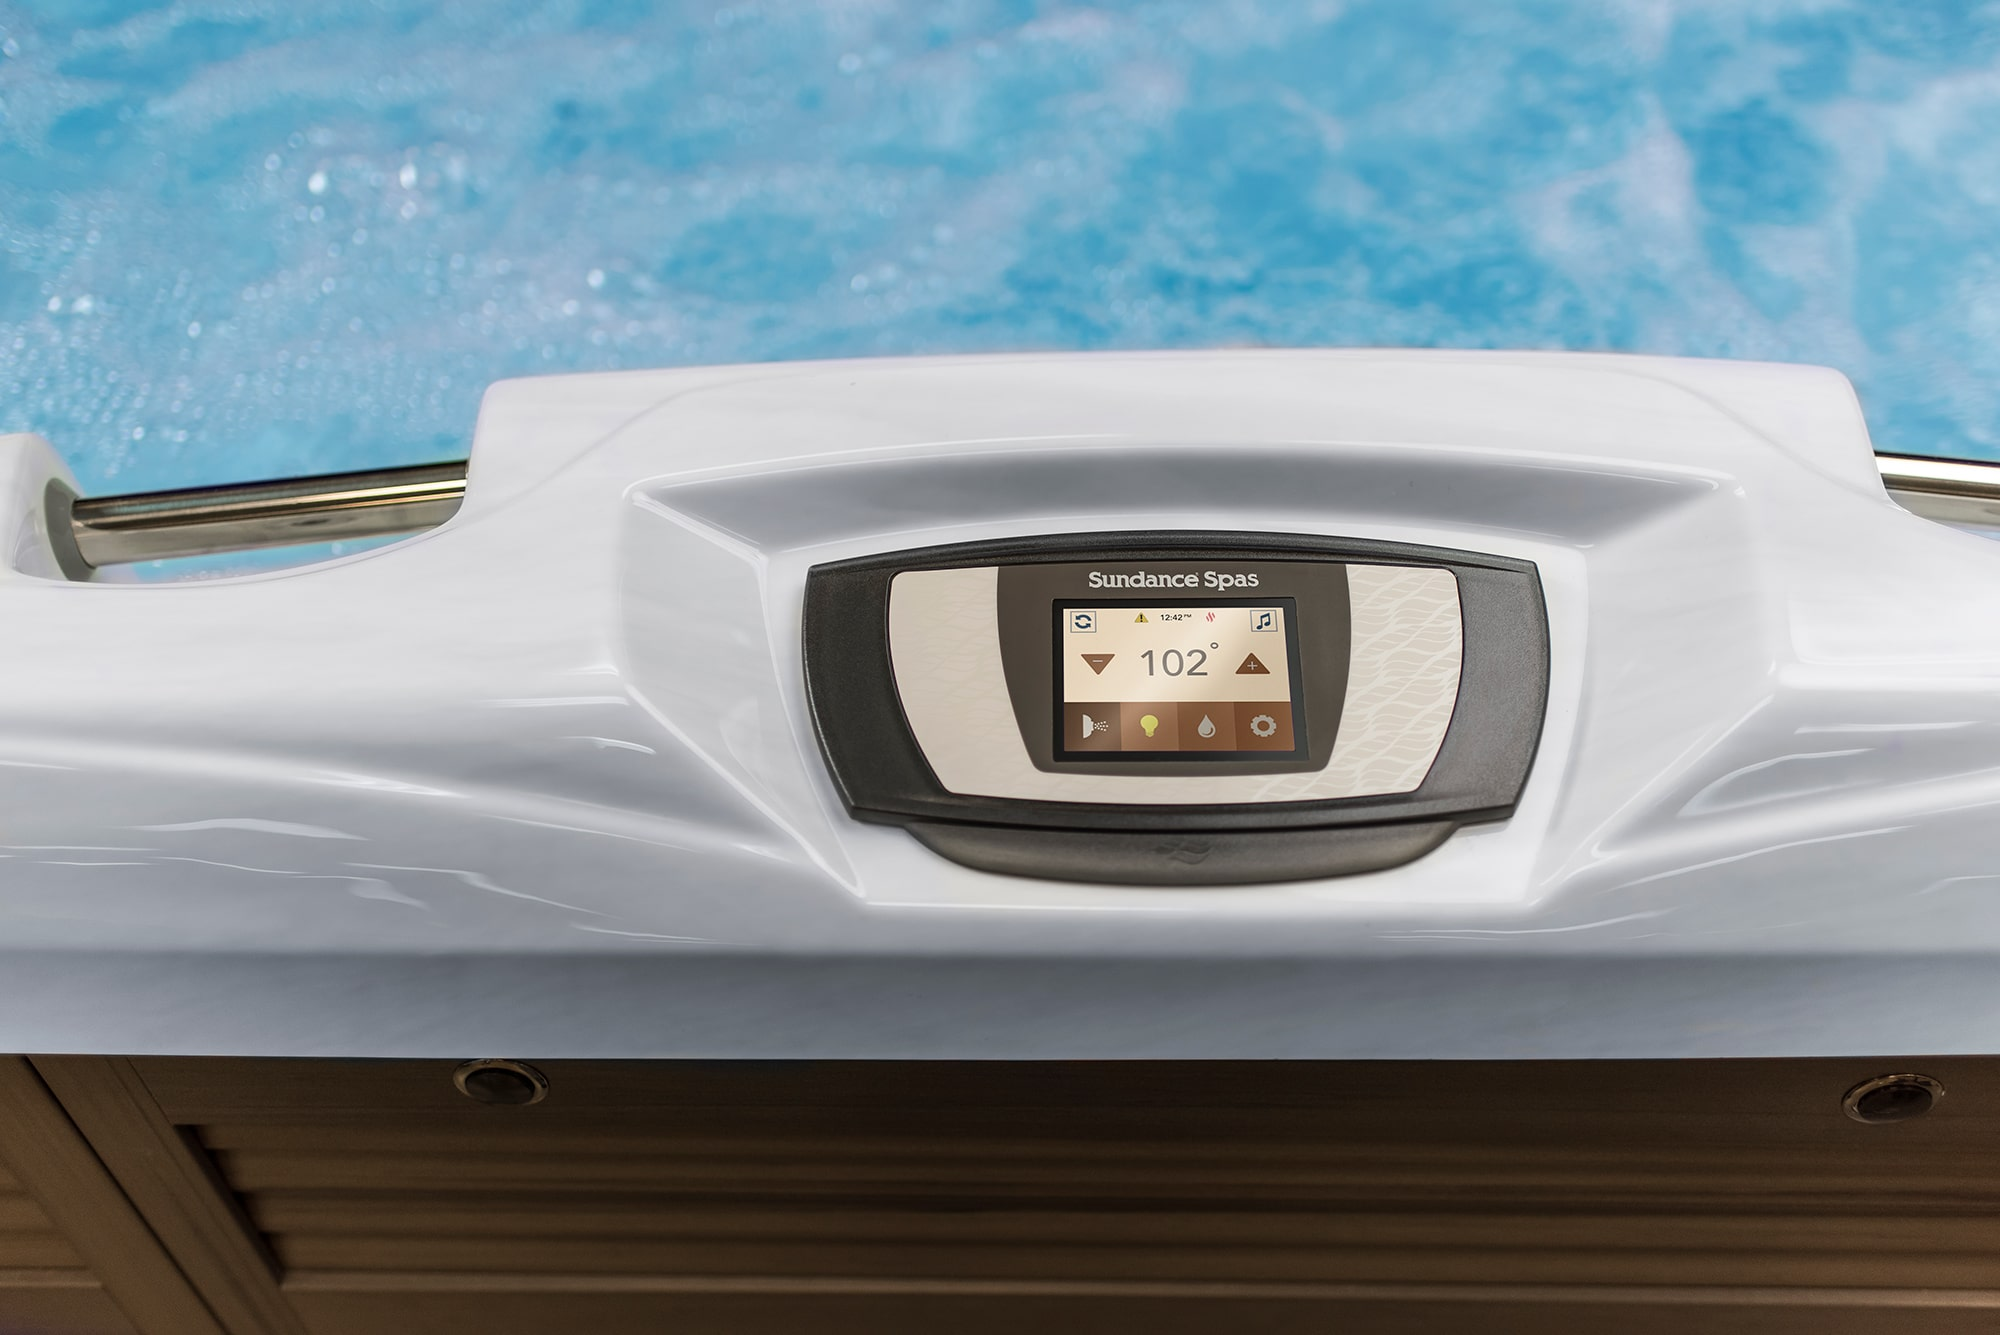 Sundance Spas 880 Series Controls